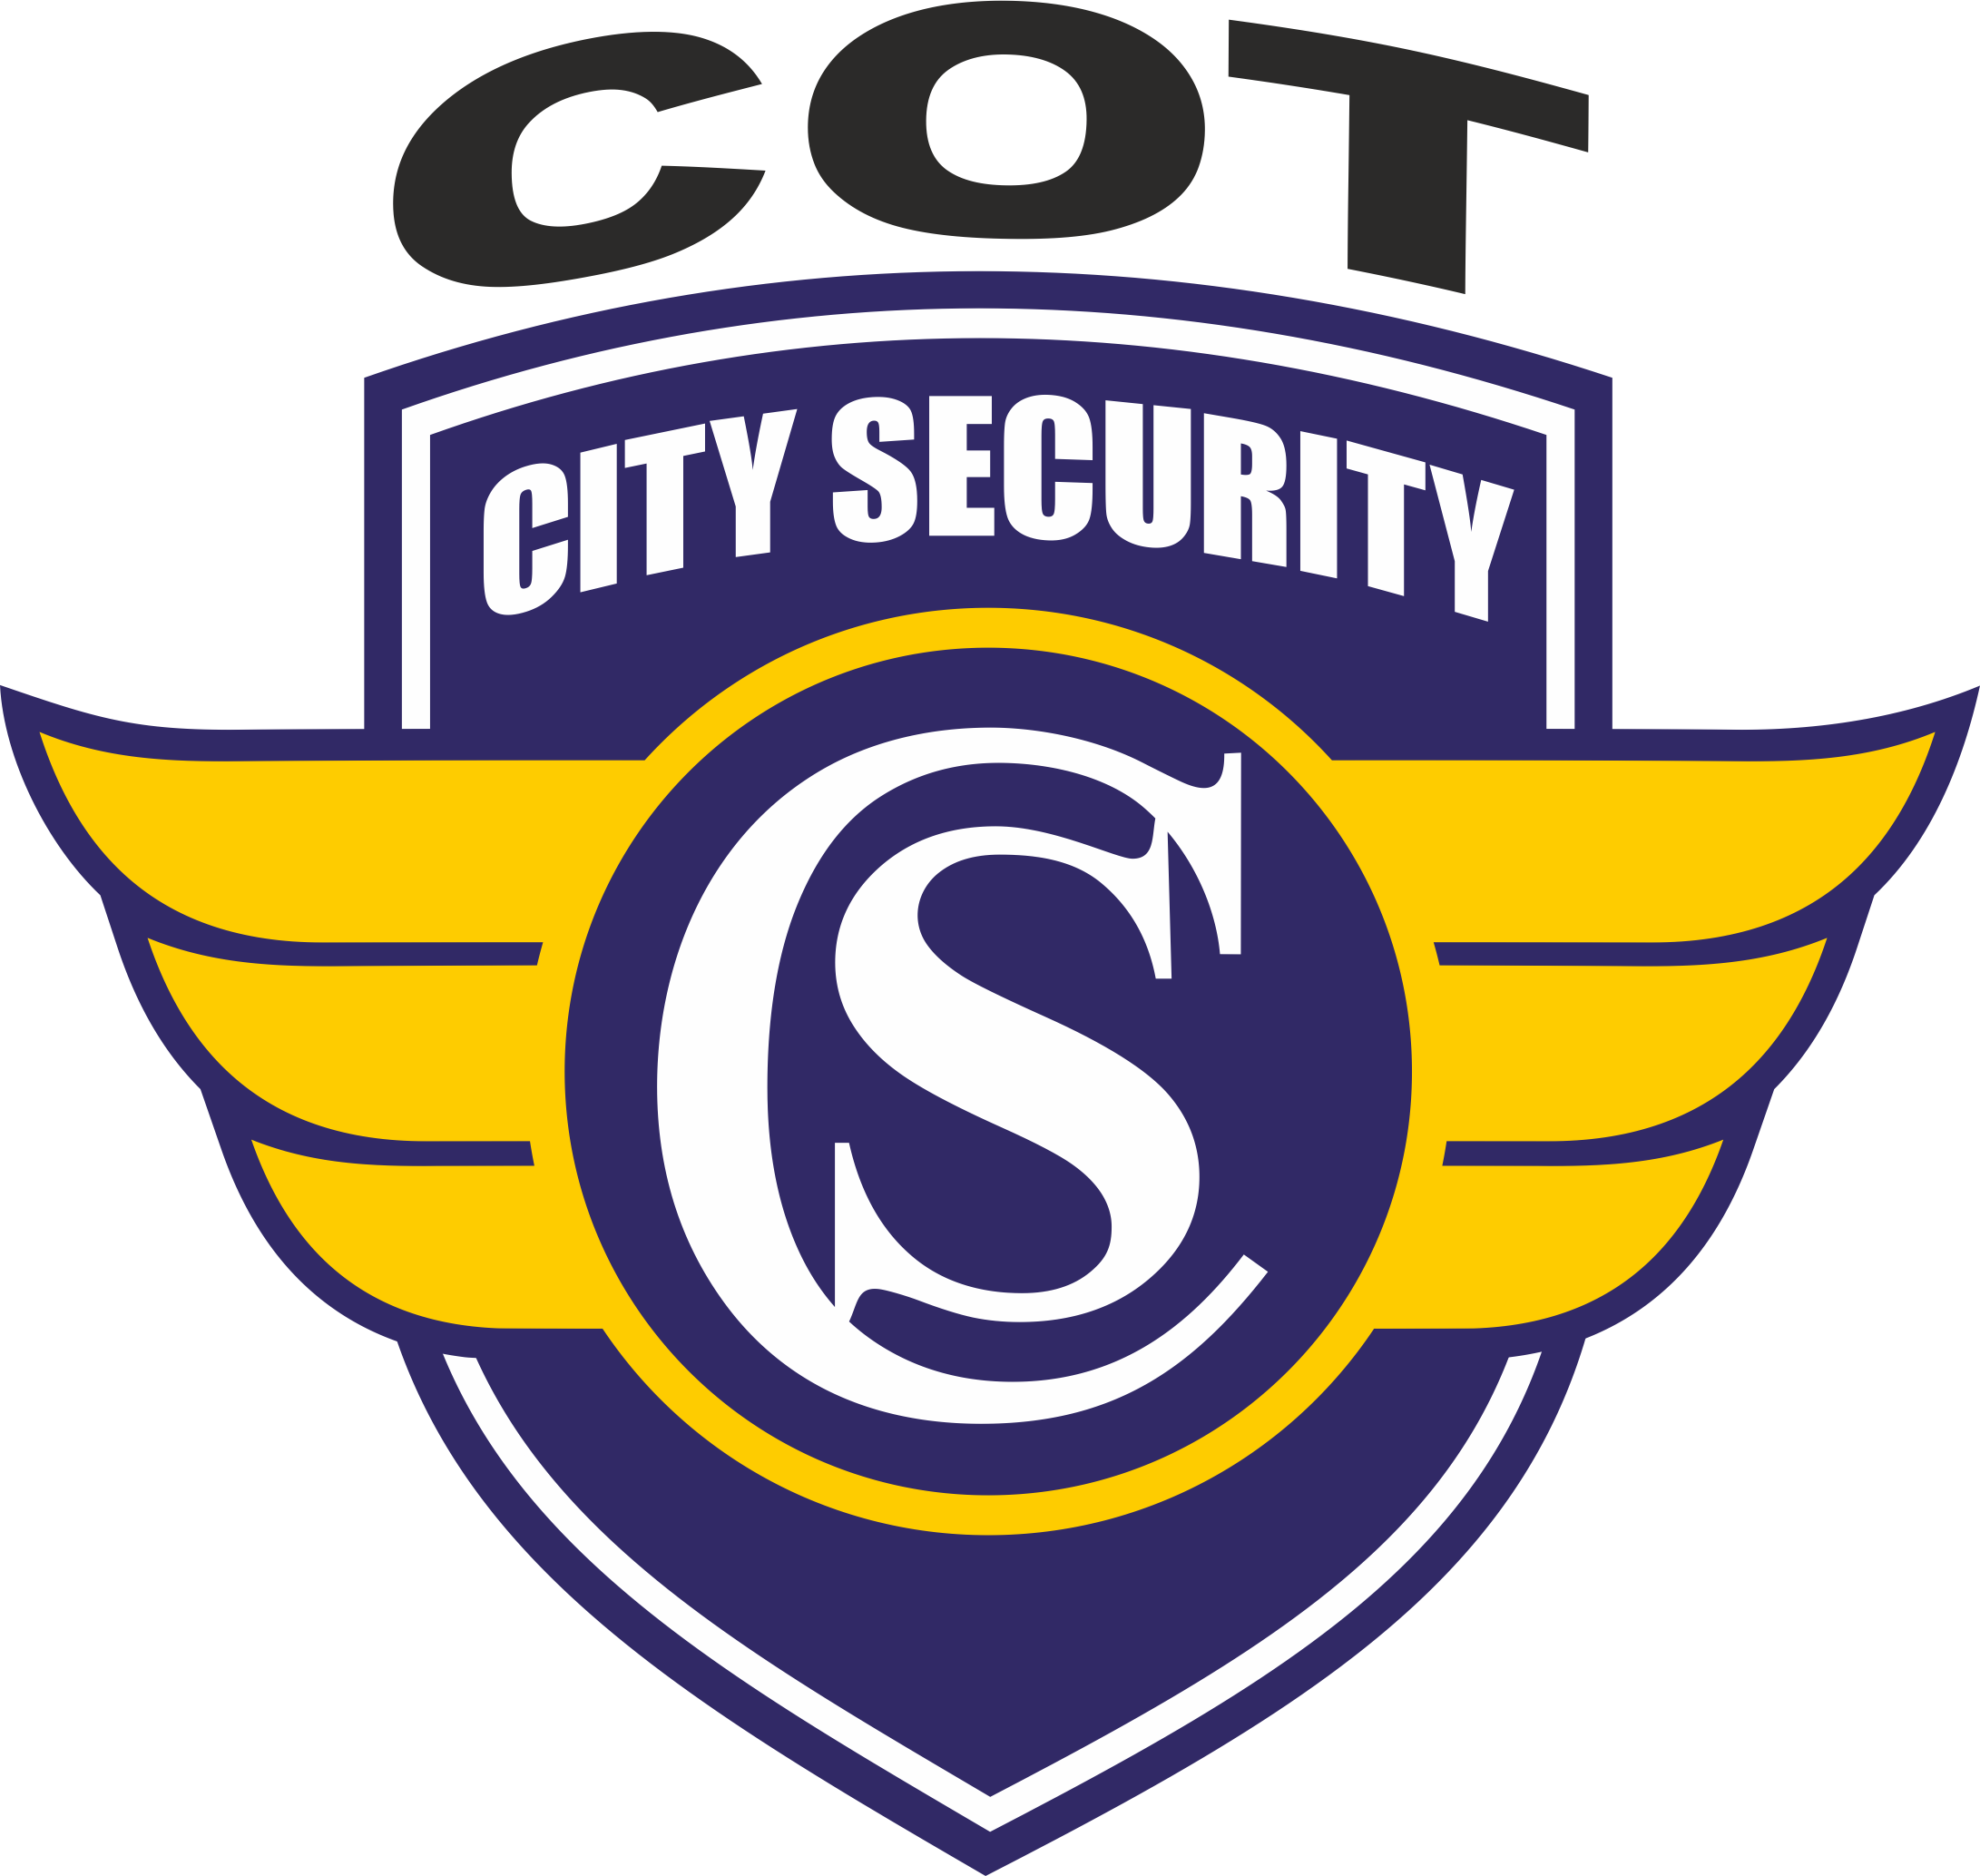 city-security